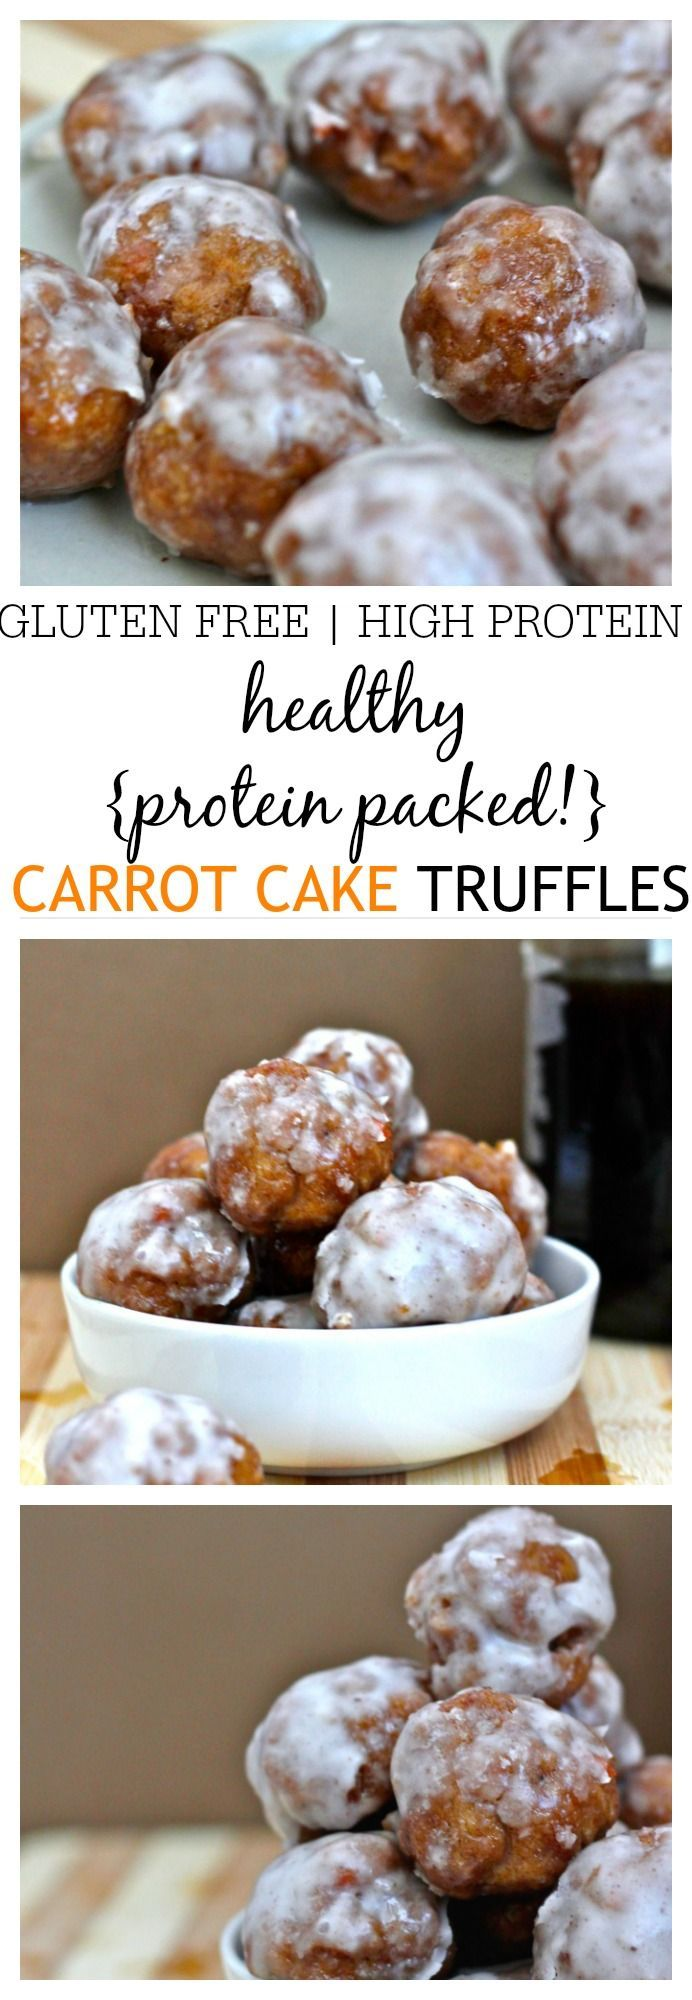 Healthy Carrot Cake Truffles- These healthy Carrot Cake Truffles are SO simple to whip up and you'd never tell they were nutritious! High in protein, very low in sugar and naturally gluten free, these are the perfect snack or pre/post workout treat! @thebigmansworld -thebigmansworld.com